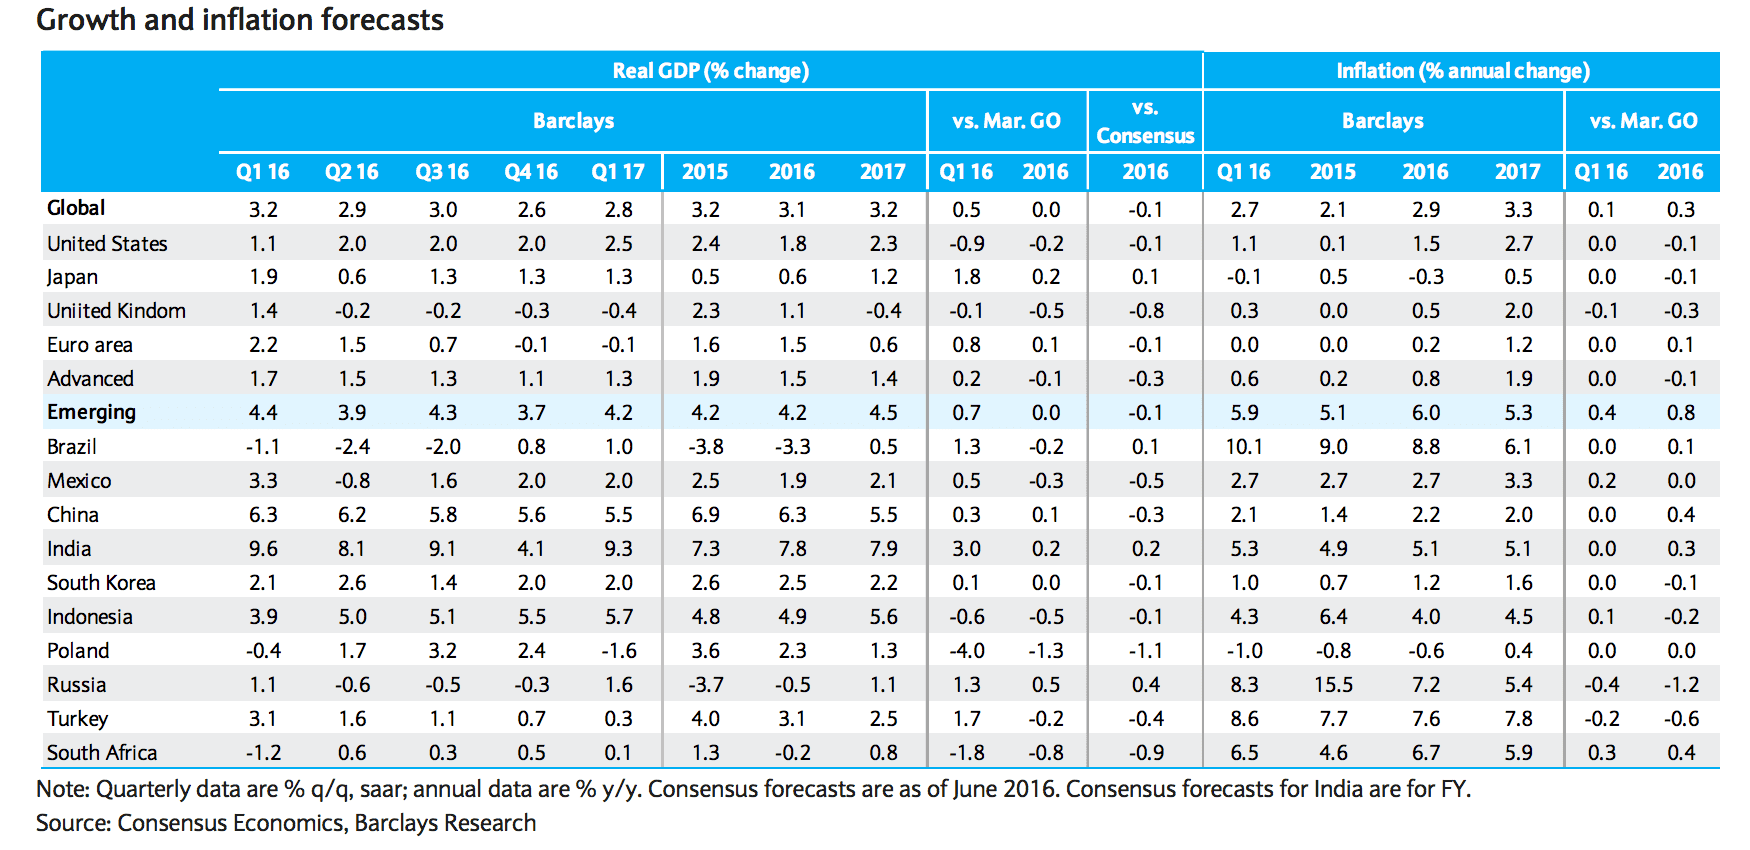 Inflation and GDP forecasts